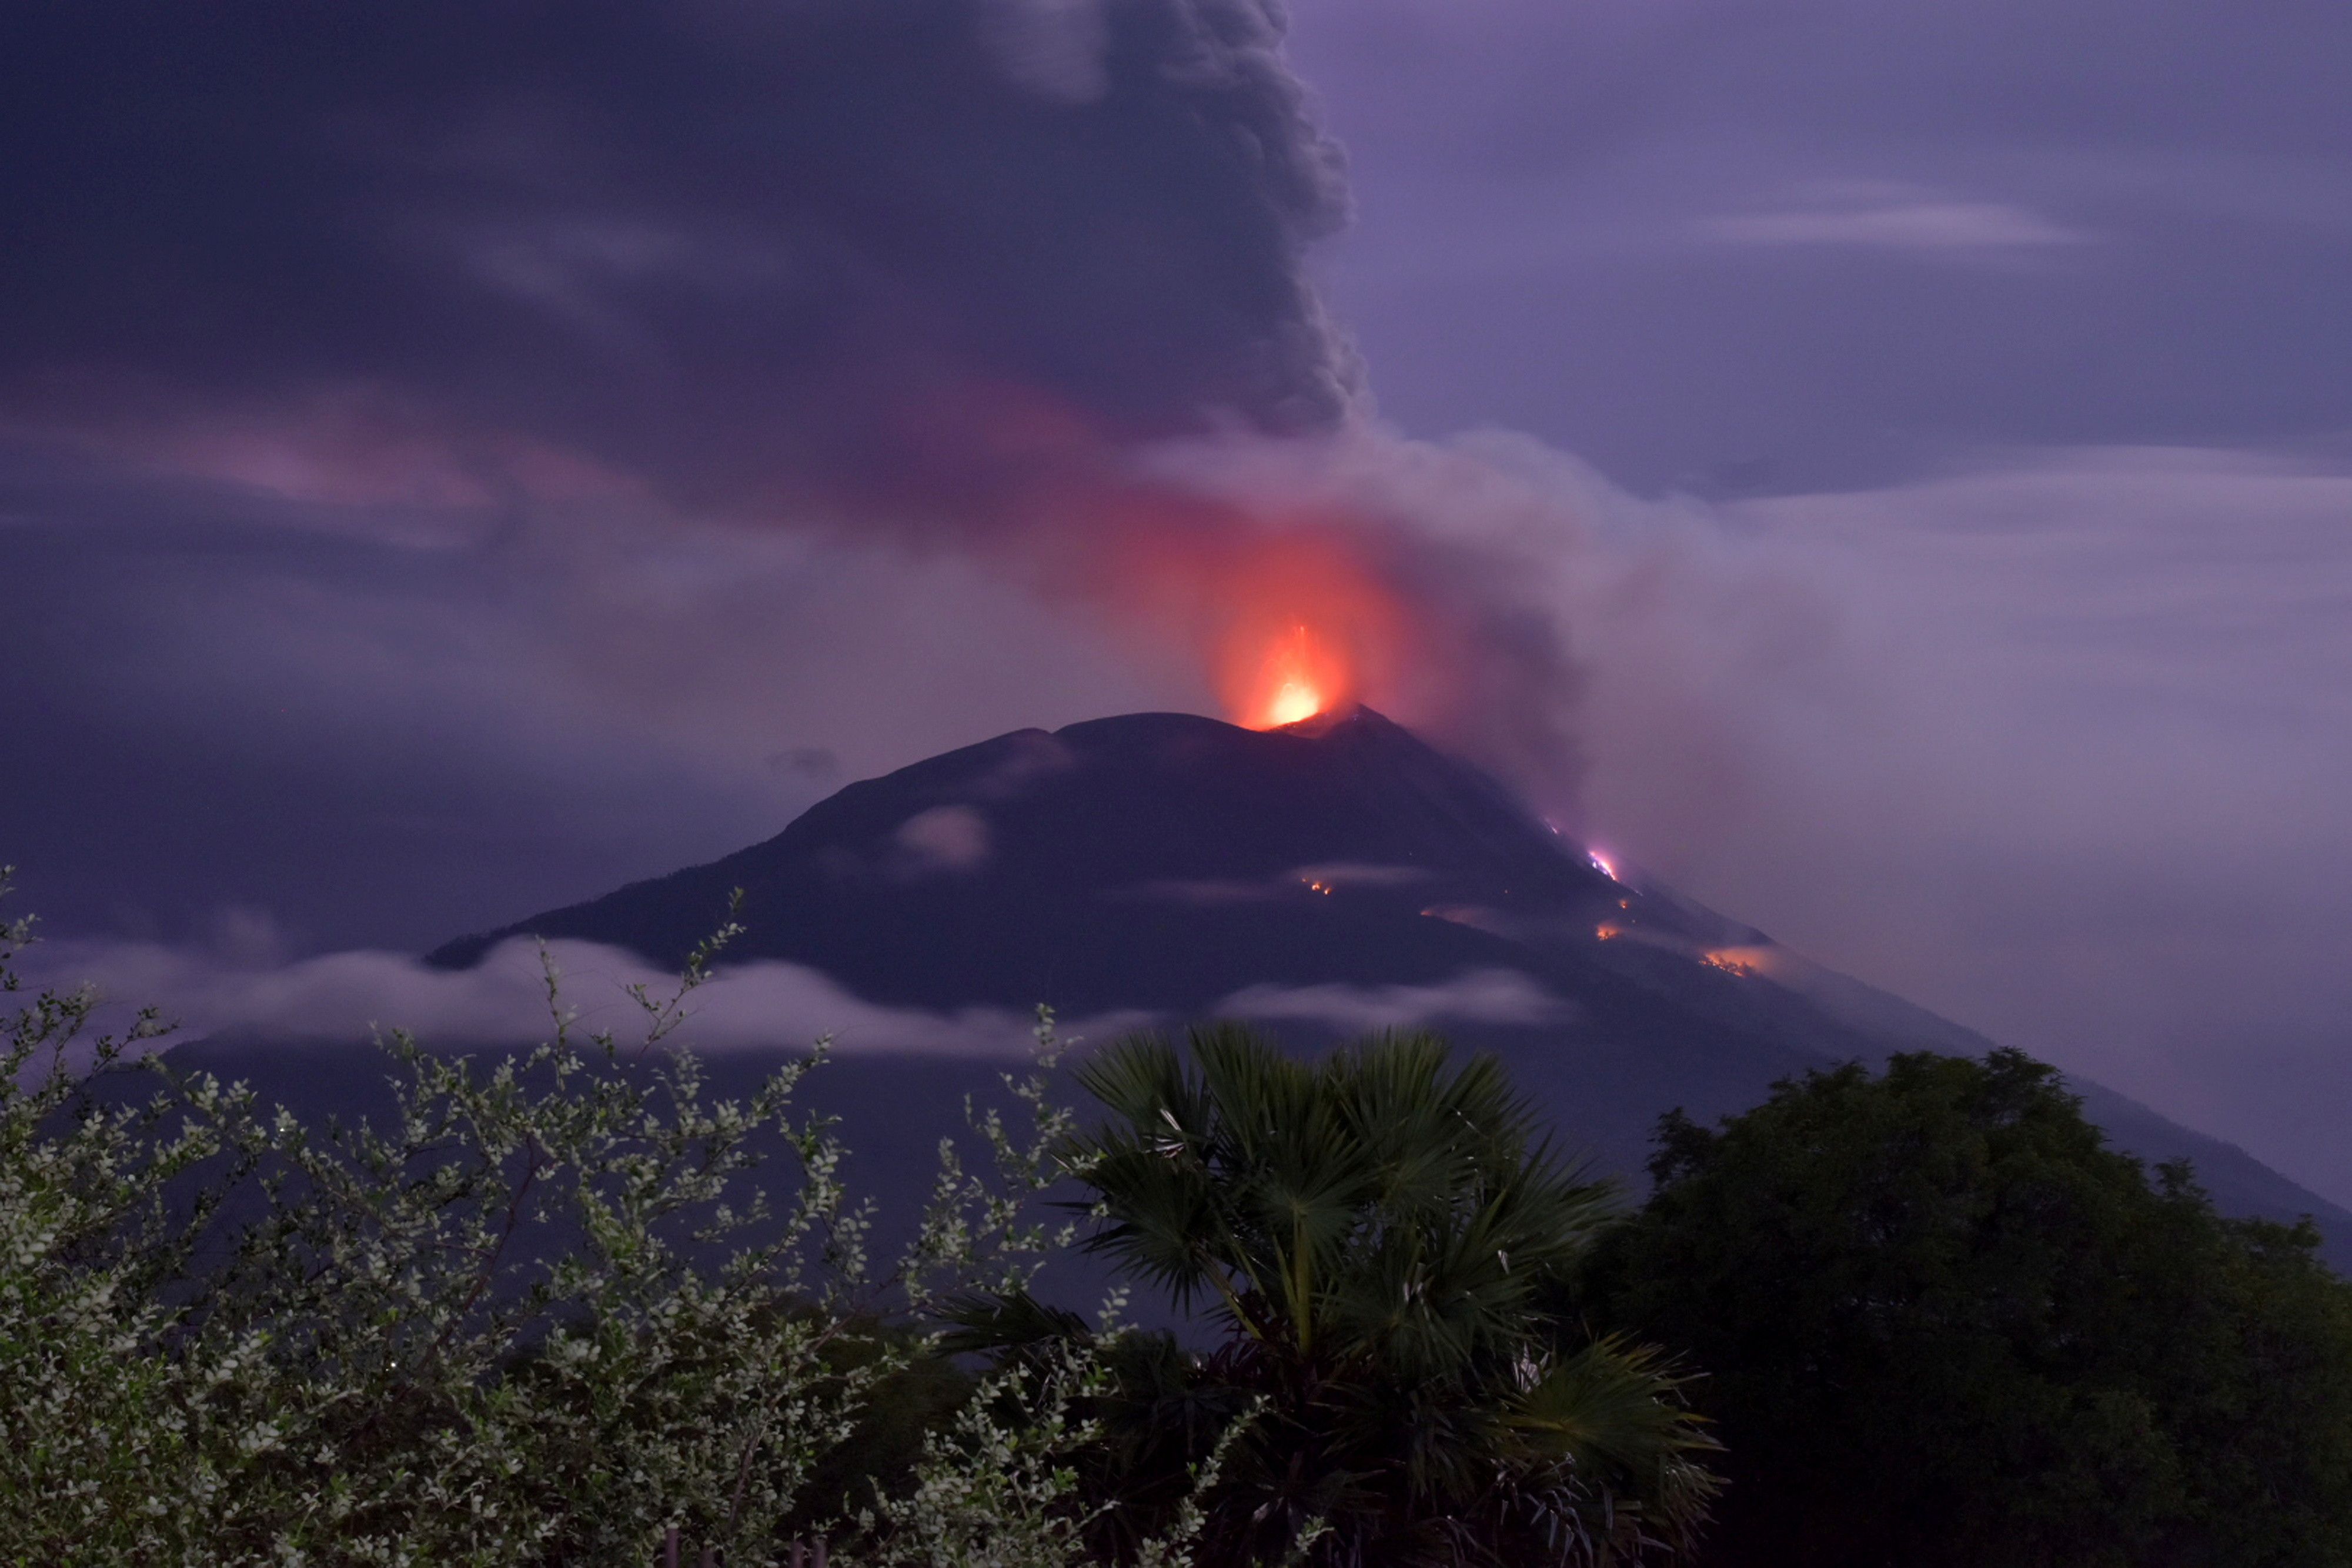 An eruption of Mount Ile Lewotolok is seen in Lembata, East Nusa Tenggara Province, Indonesia November 29, 2020. in this photo taken by Antara Foto/Aken Udjan via Reuters. ATTENTION EDITORS - THIS IMAGE WAS PROVIDED BY THIRD PARTY. MANDATORY CREDIT. INDONESIA OUT. - RC22DK94XIXC